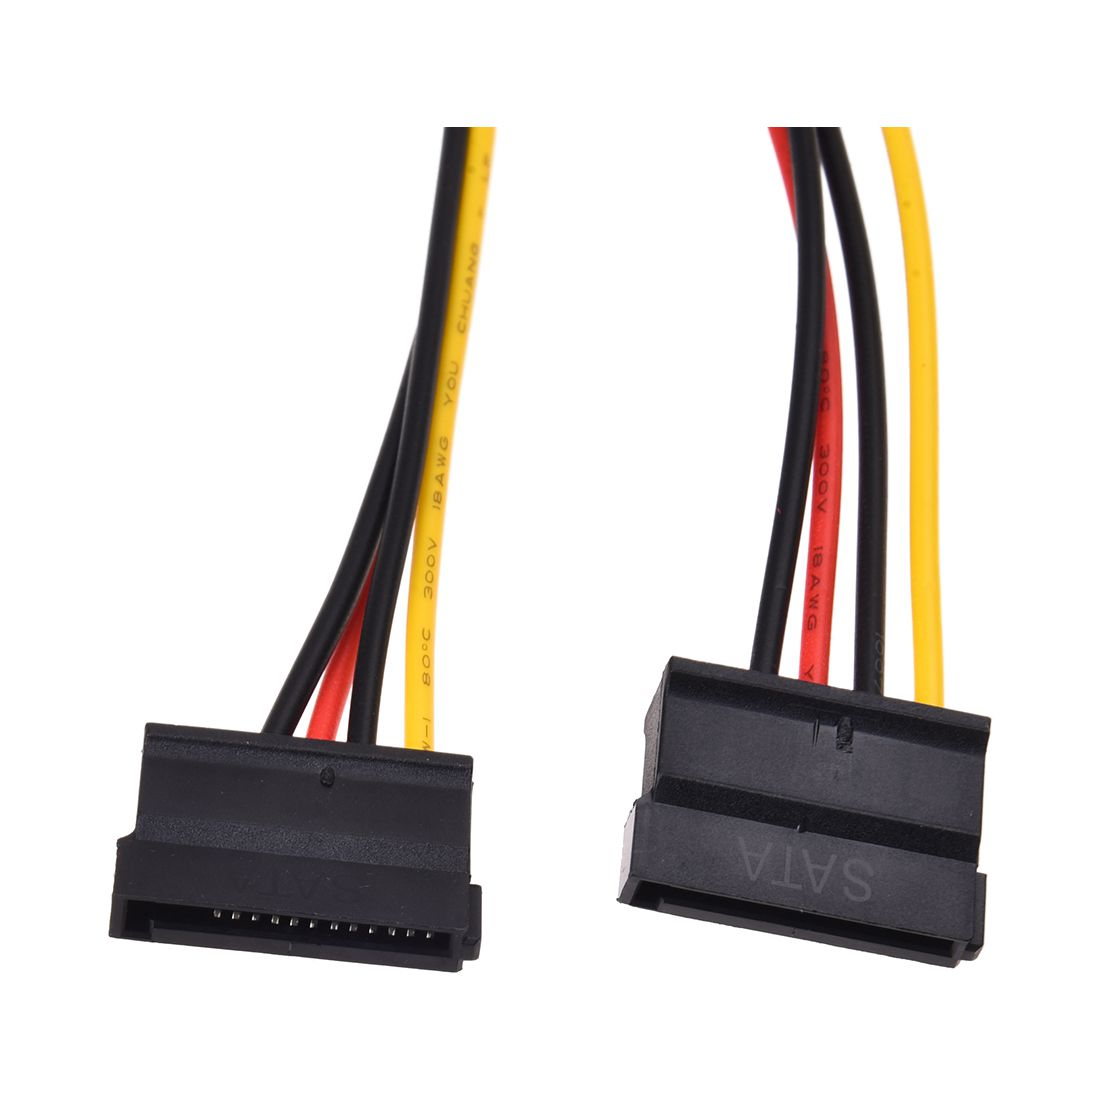 LP4 to 2 SATA Internal Power Splitter Cable (SATA Power Splitter Adapter Cable 4 pin Molex 5.25 to 2 x SATA Converter) cable 18cm 2 way 4 pin psu power splitter cable lp4 molex 1 to 2 drop shipping cabo 17july18 page 2